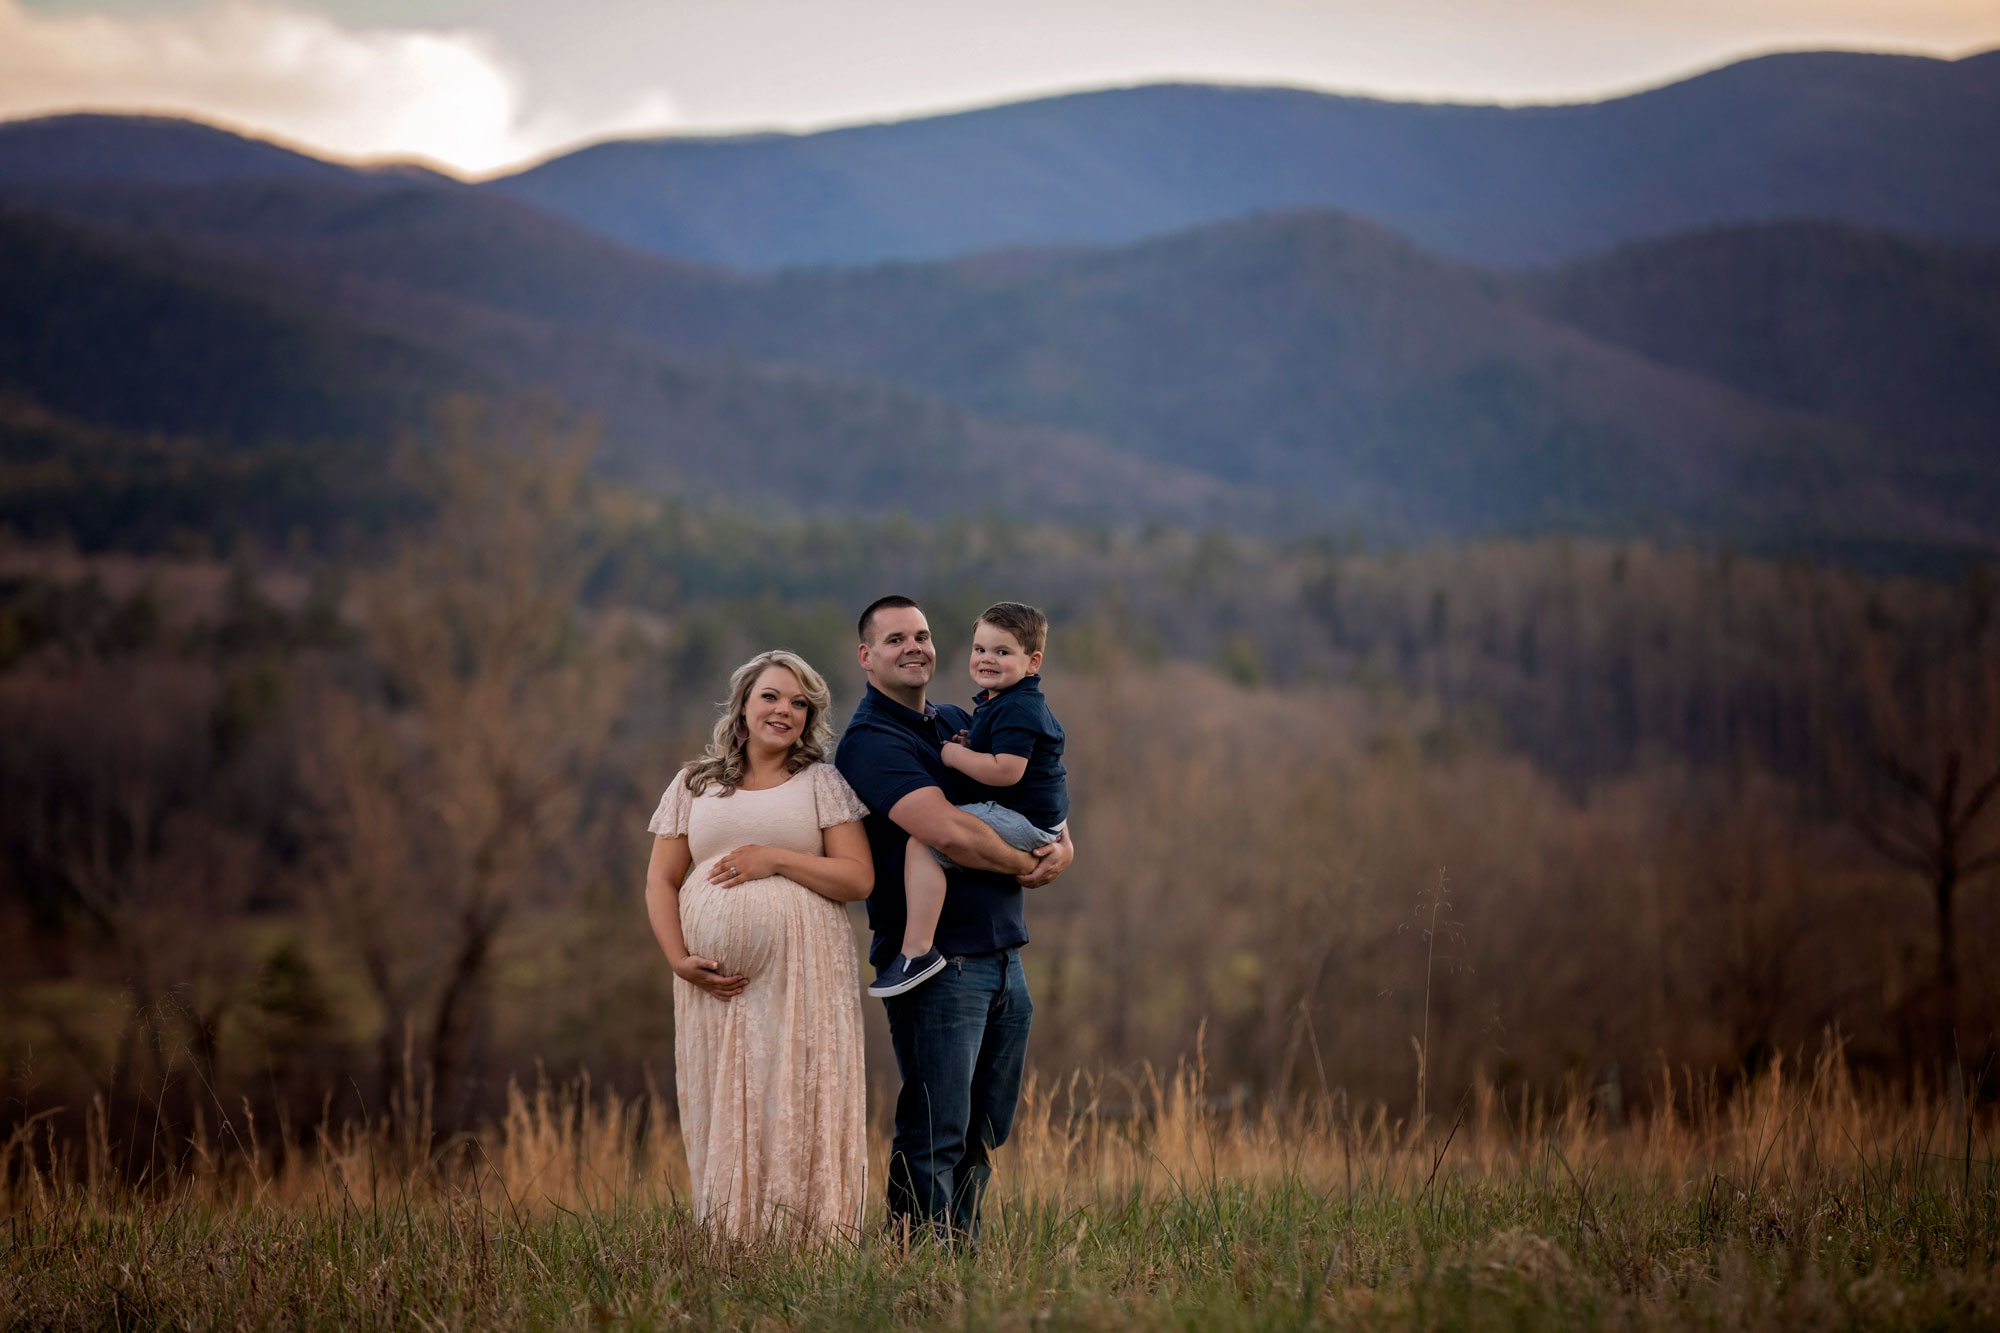 cades-cove-photographer-smoky-mountain-family-portrait.jpg